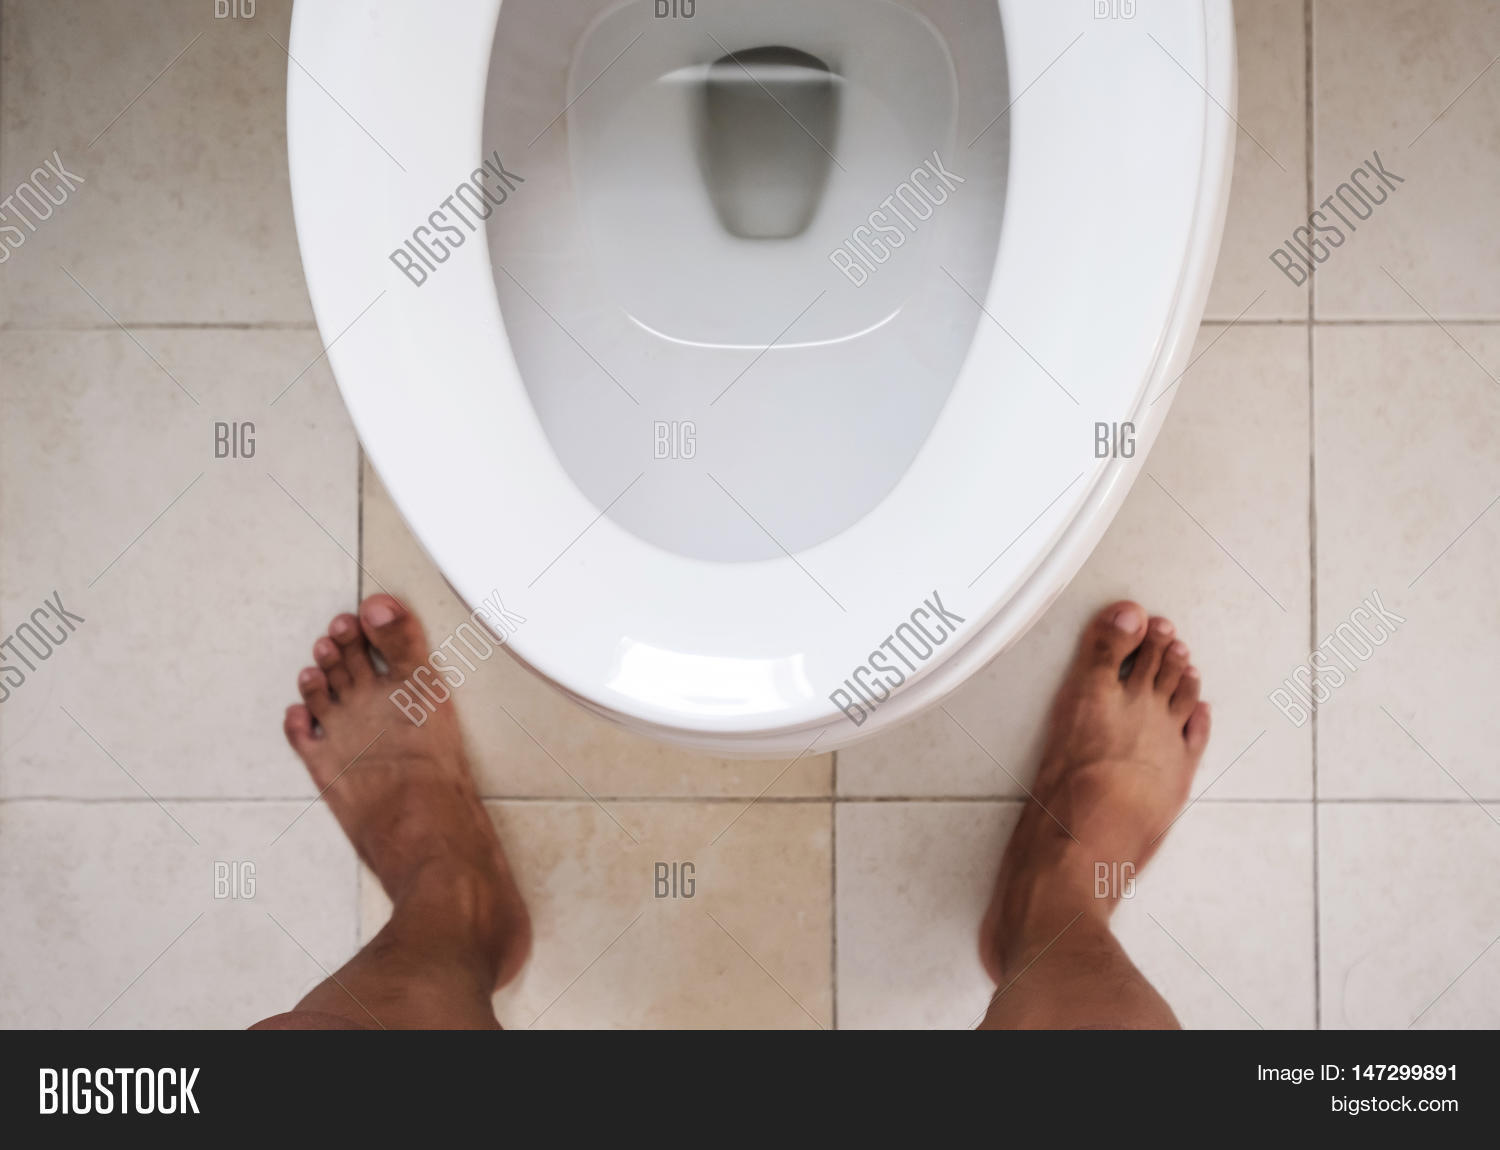 Top View, Toilet Image & Photo (Free Trial) | Bigstock